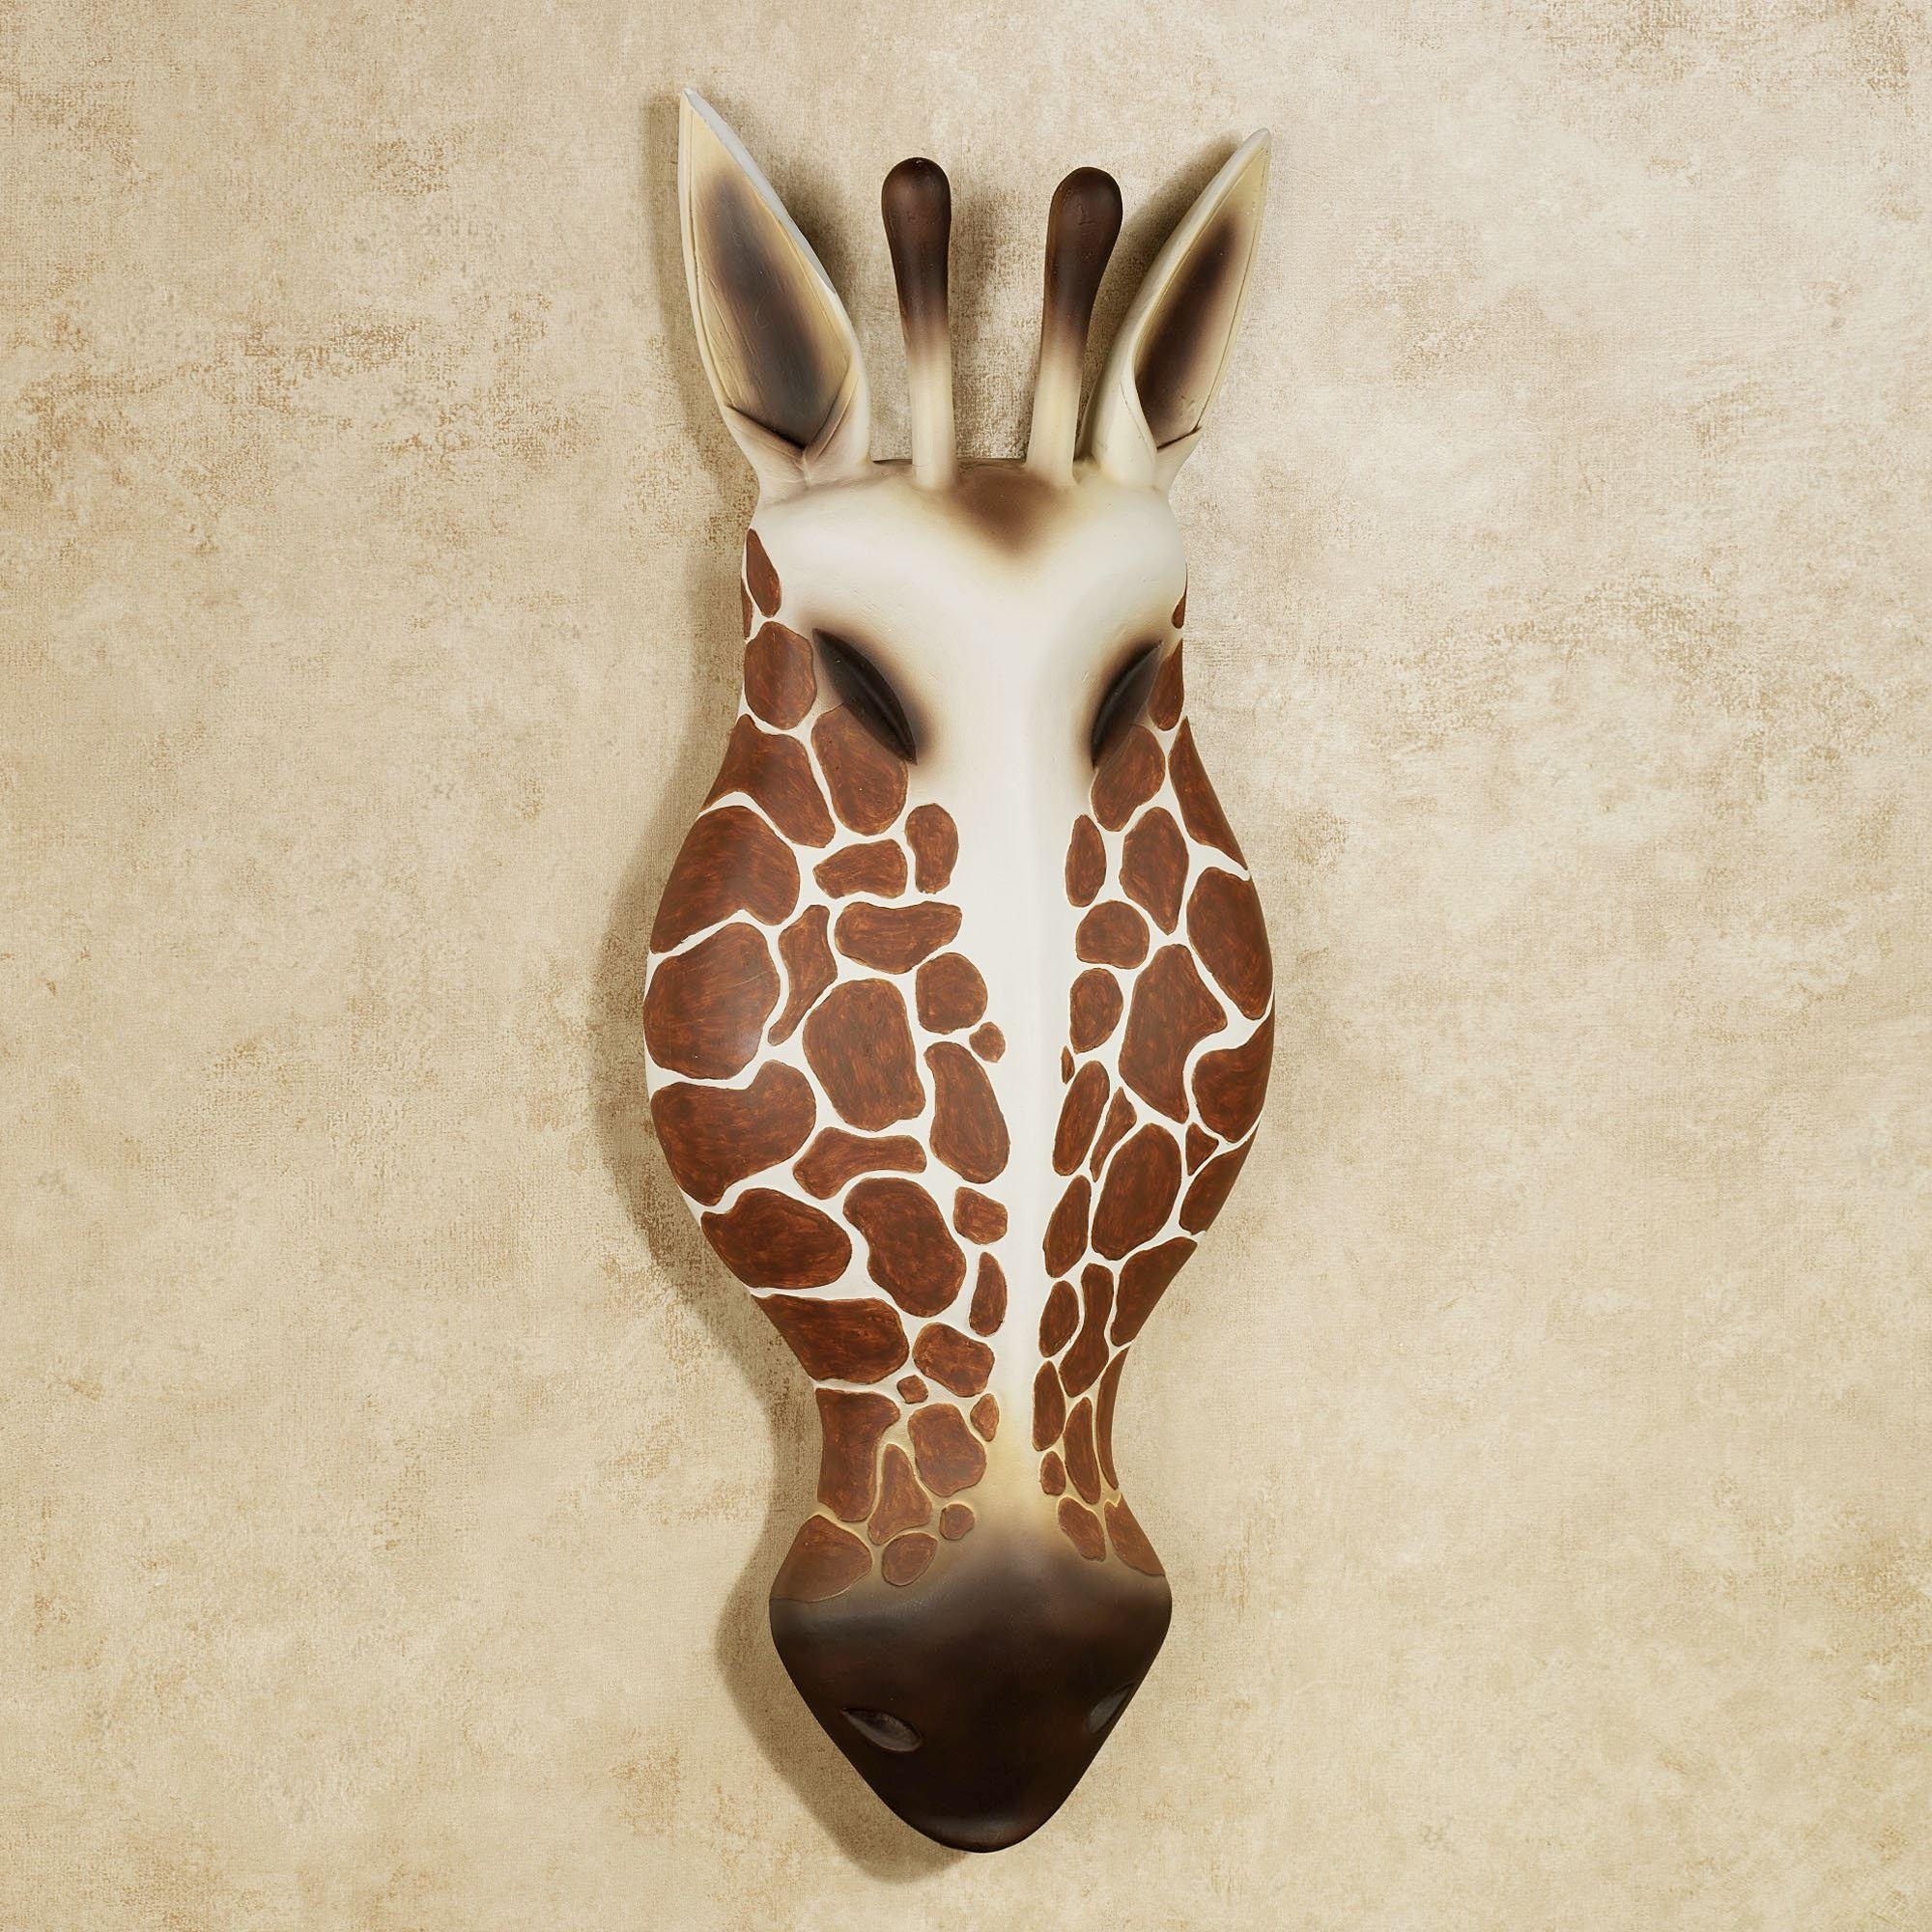 Resin Giraffe Head Wall Art Pertaining To Resin Animal Heads Wall Art (View 11 of 20)